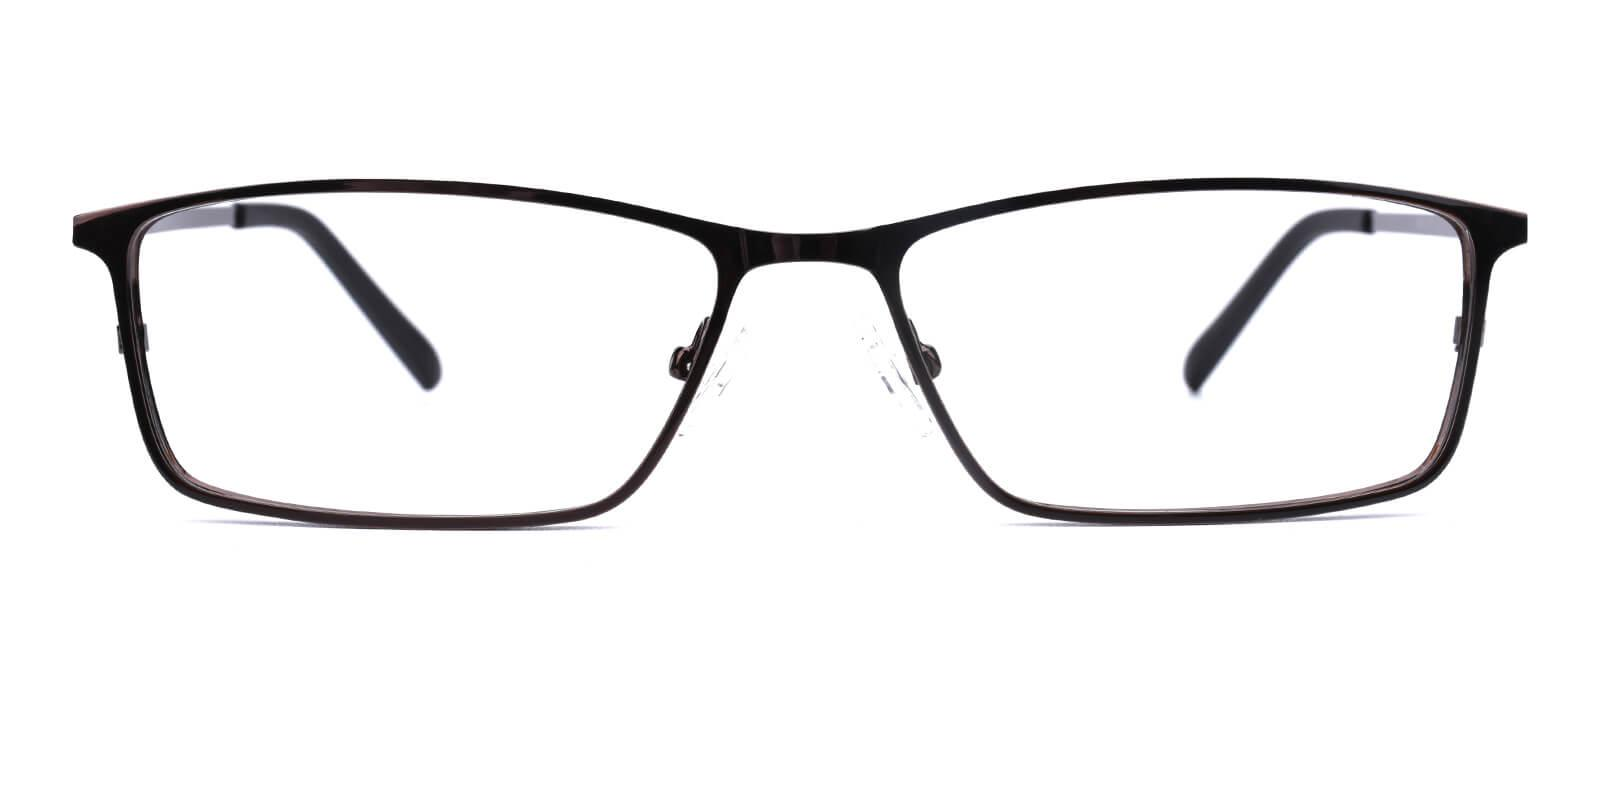 Wildfire-Brown-Rectangle-Metal-Eyeglasses-additional2